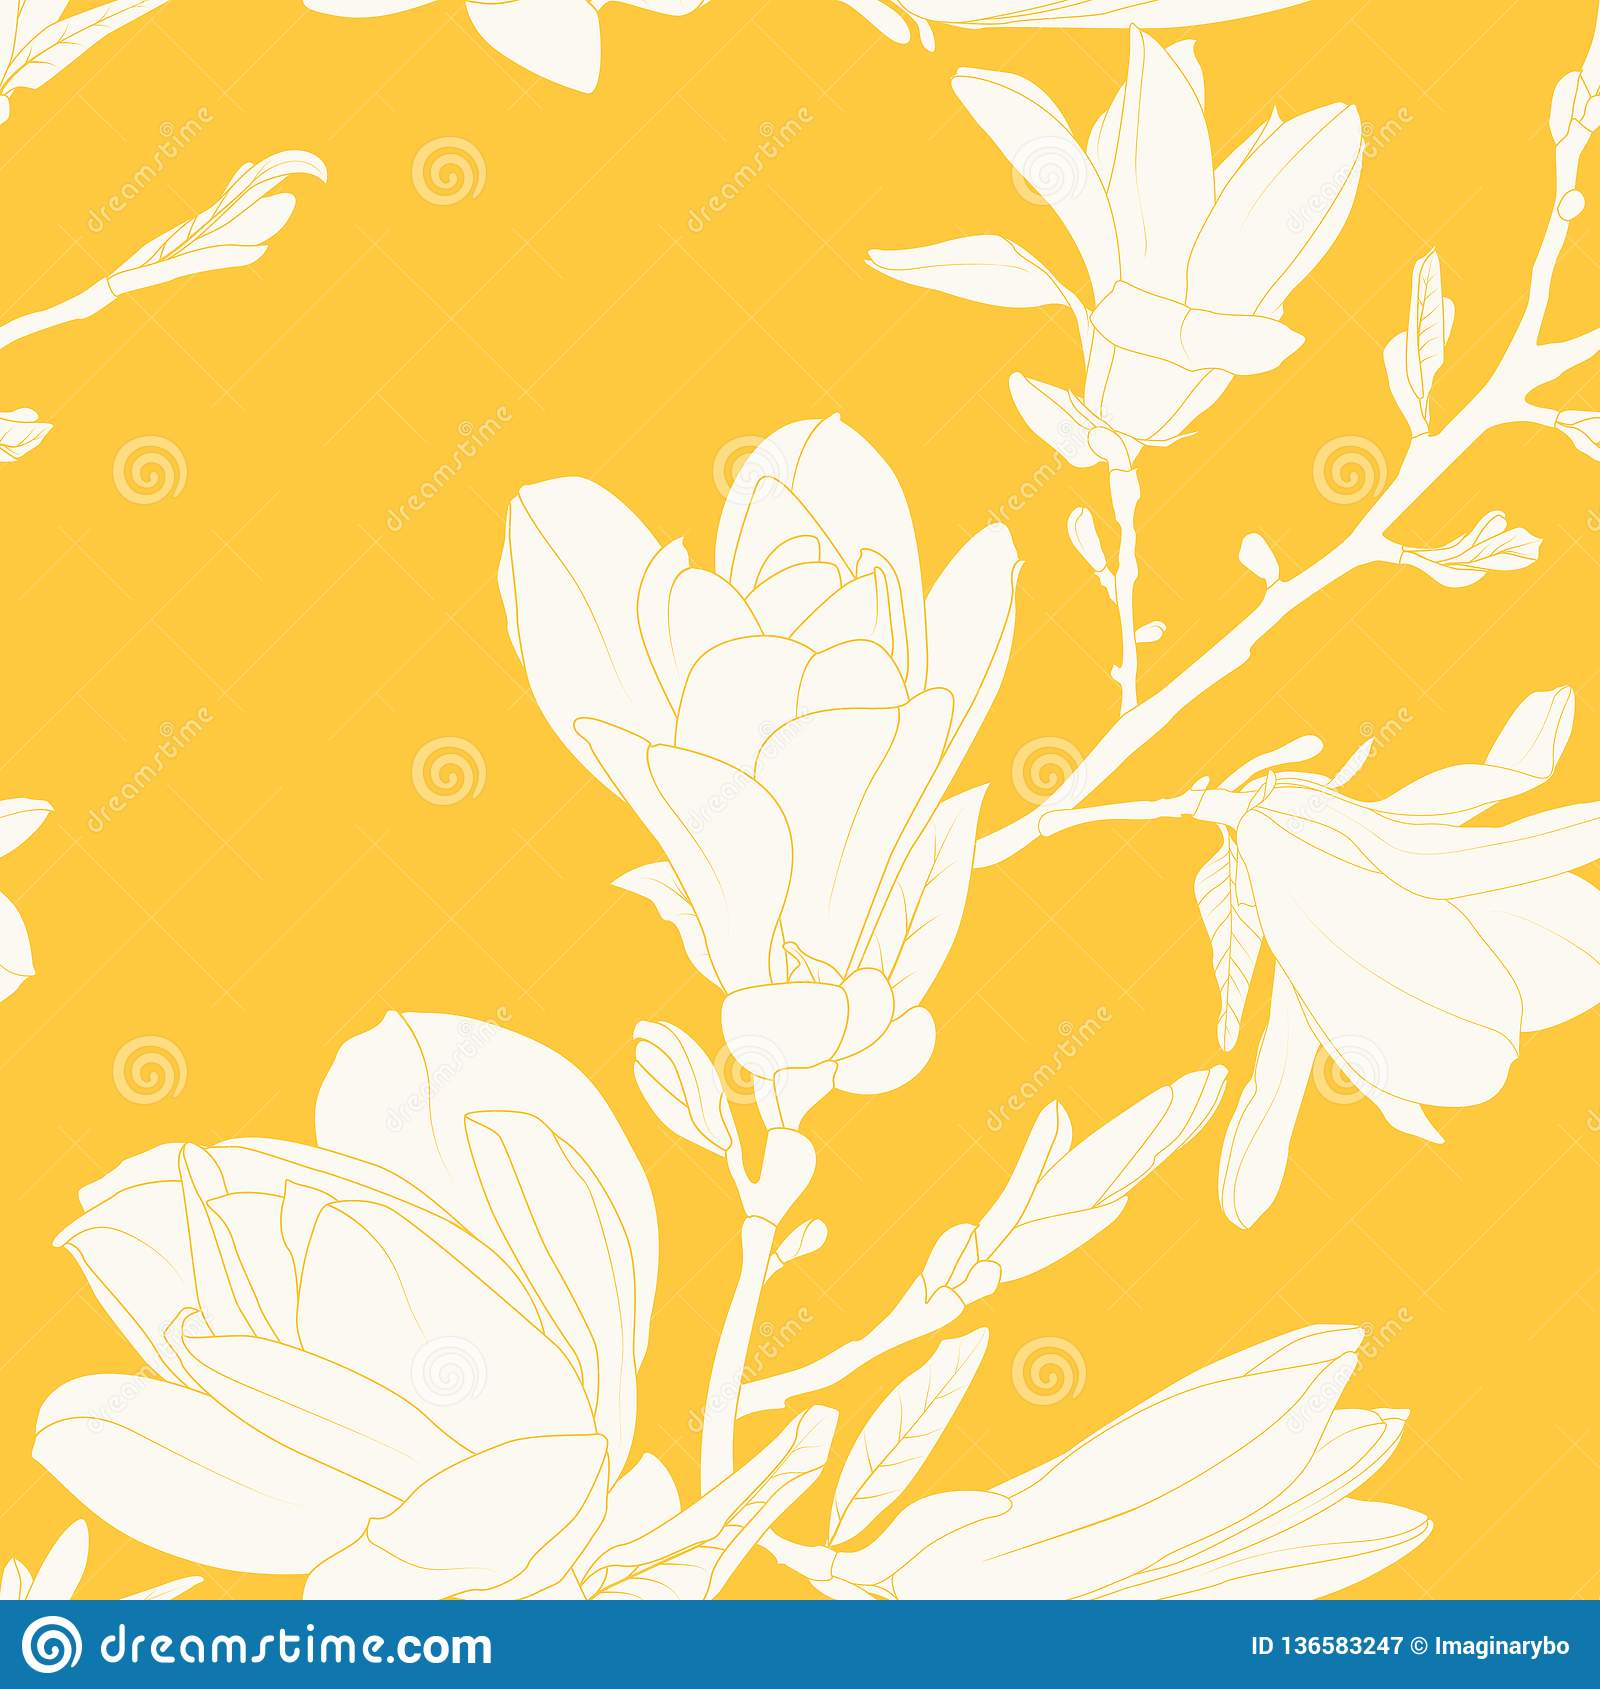 Magnolia Flowers Leaves Tree Branch Seamless Pattern Texture White